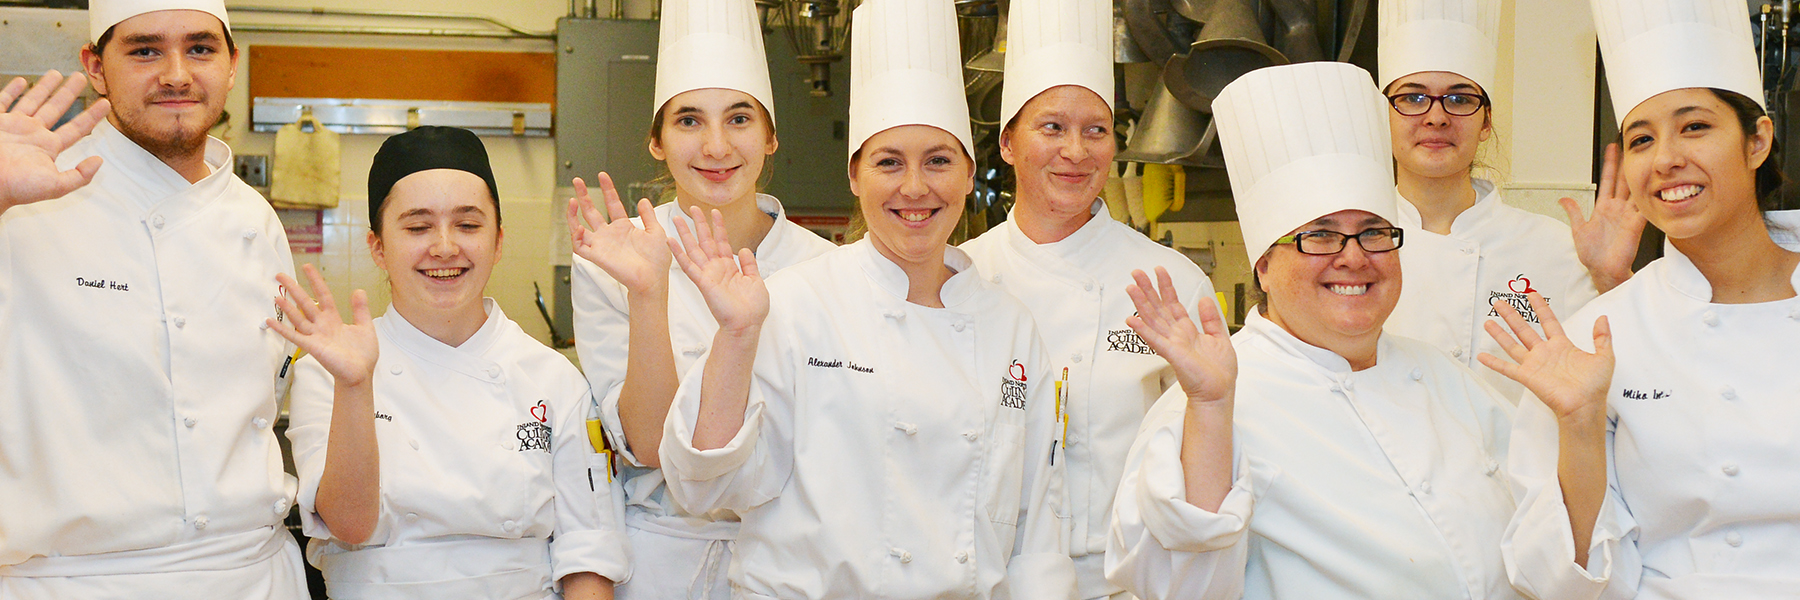 Culinary students smiling and waving